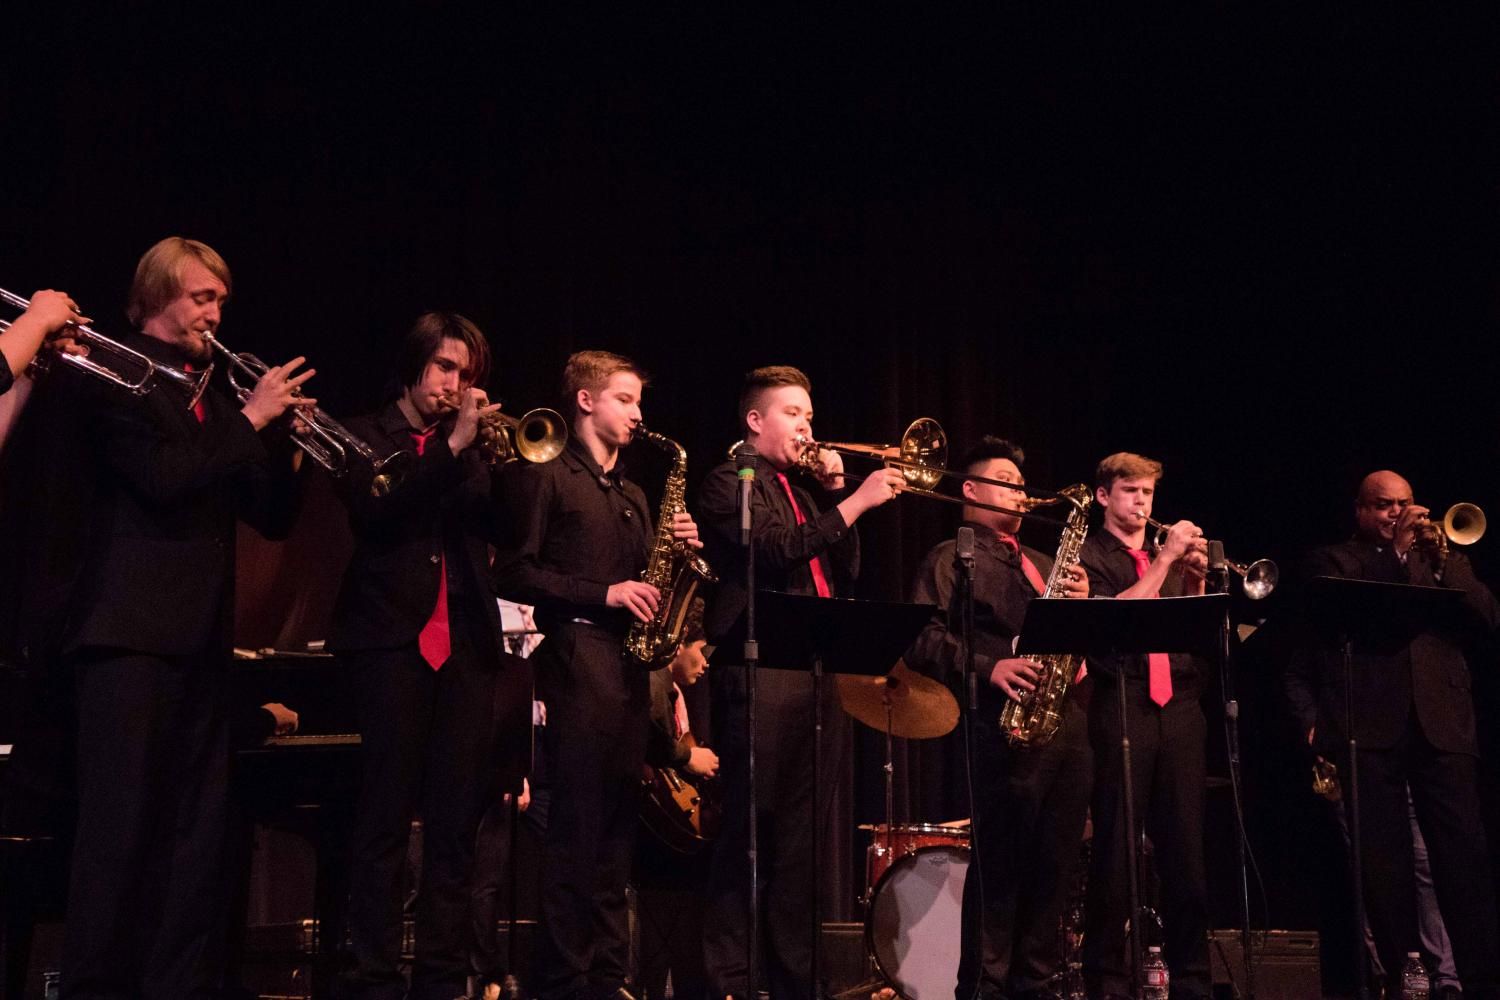 From left to right: Nathan Reeber, Solomon Plourd, Owen Moreland, Ethan Pyke, Andrew Sumabat, Finn O'hea, and Terell Stafford.